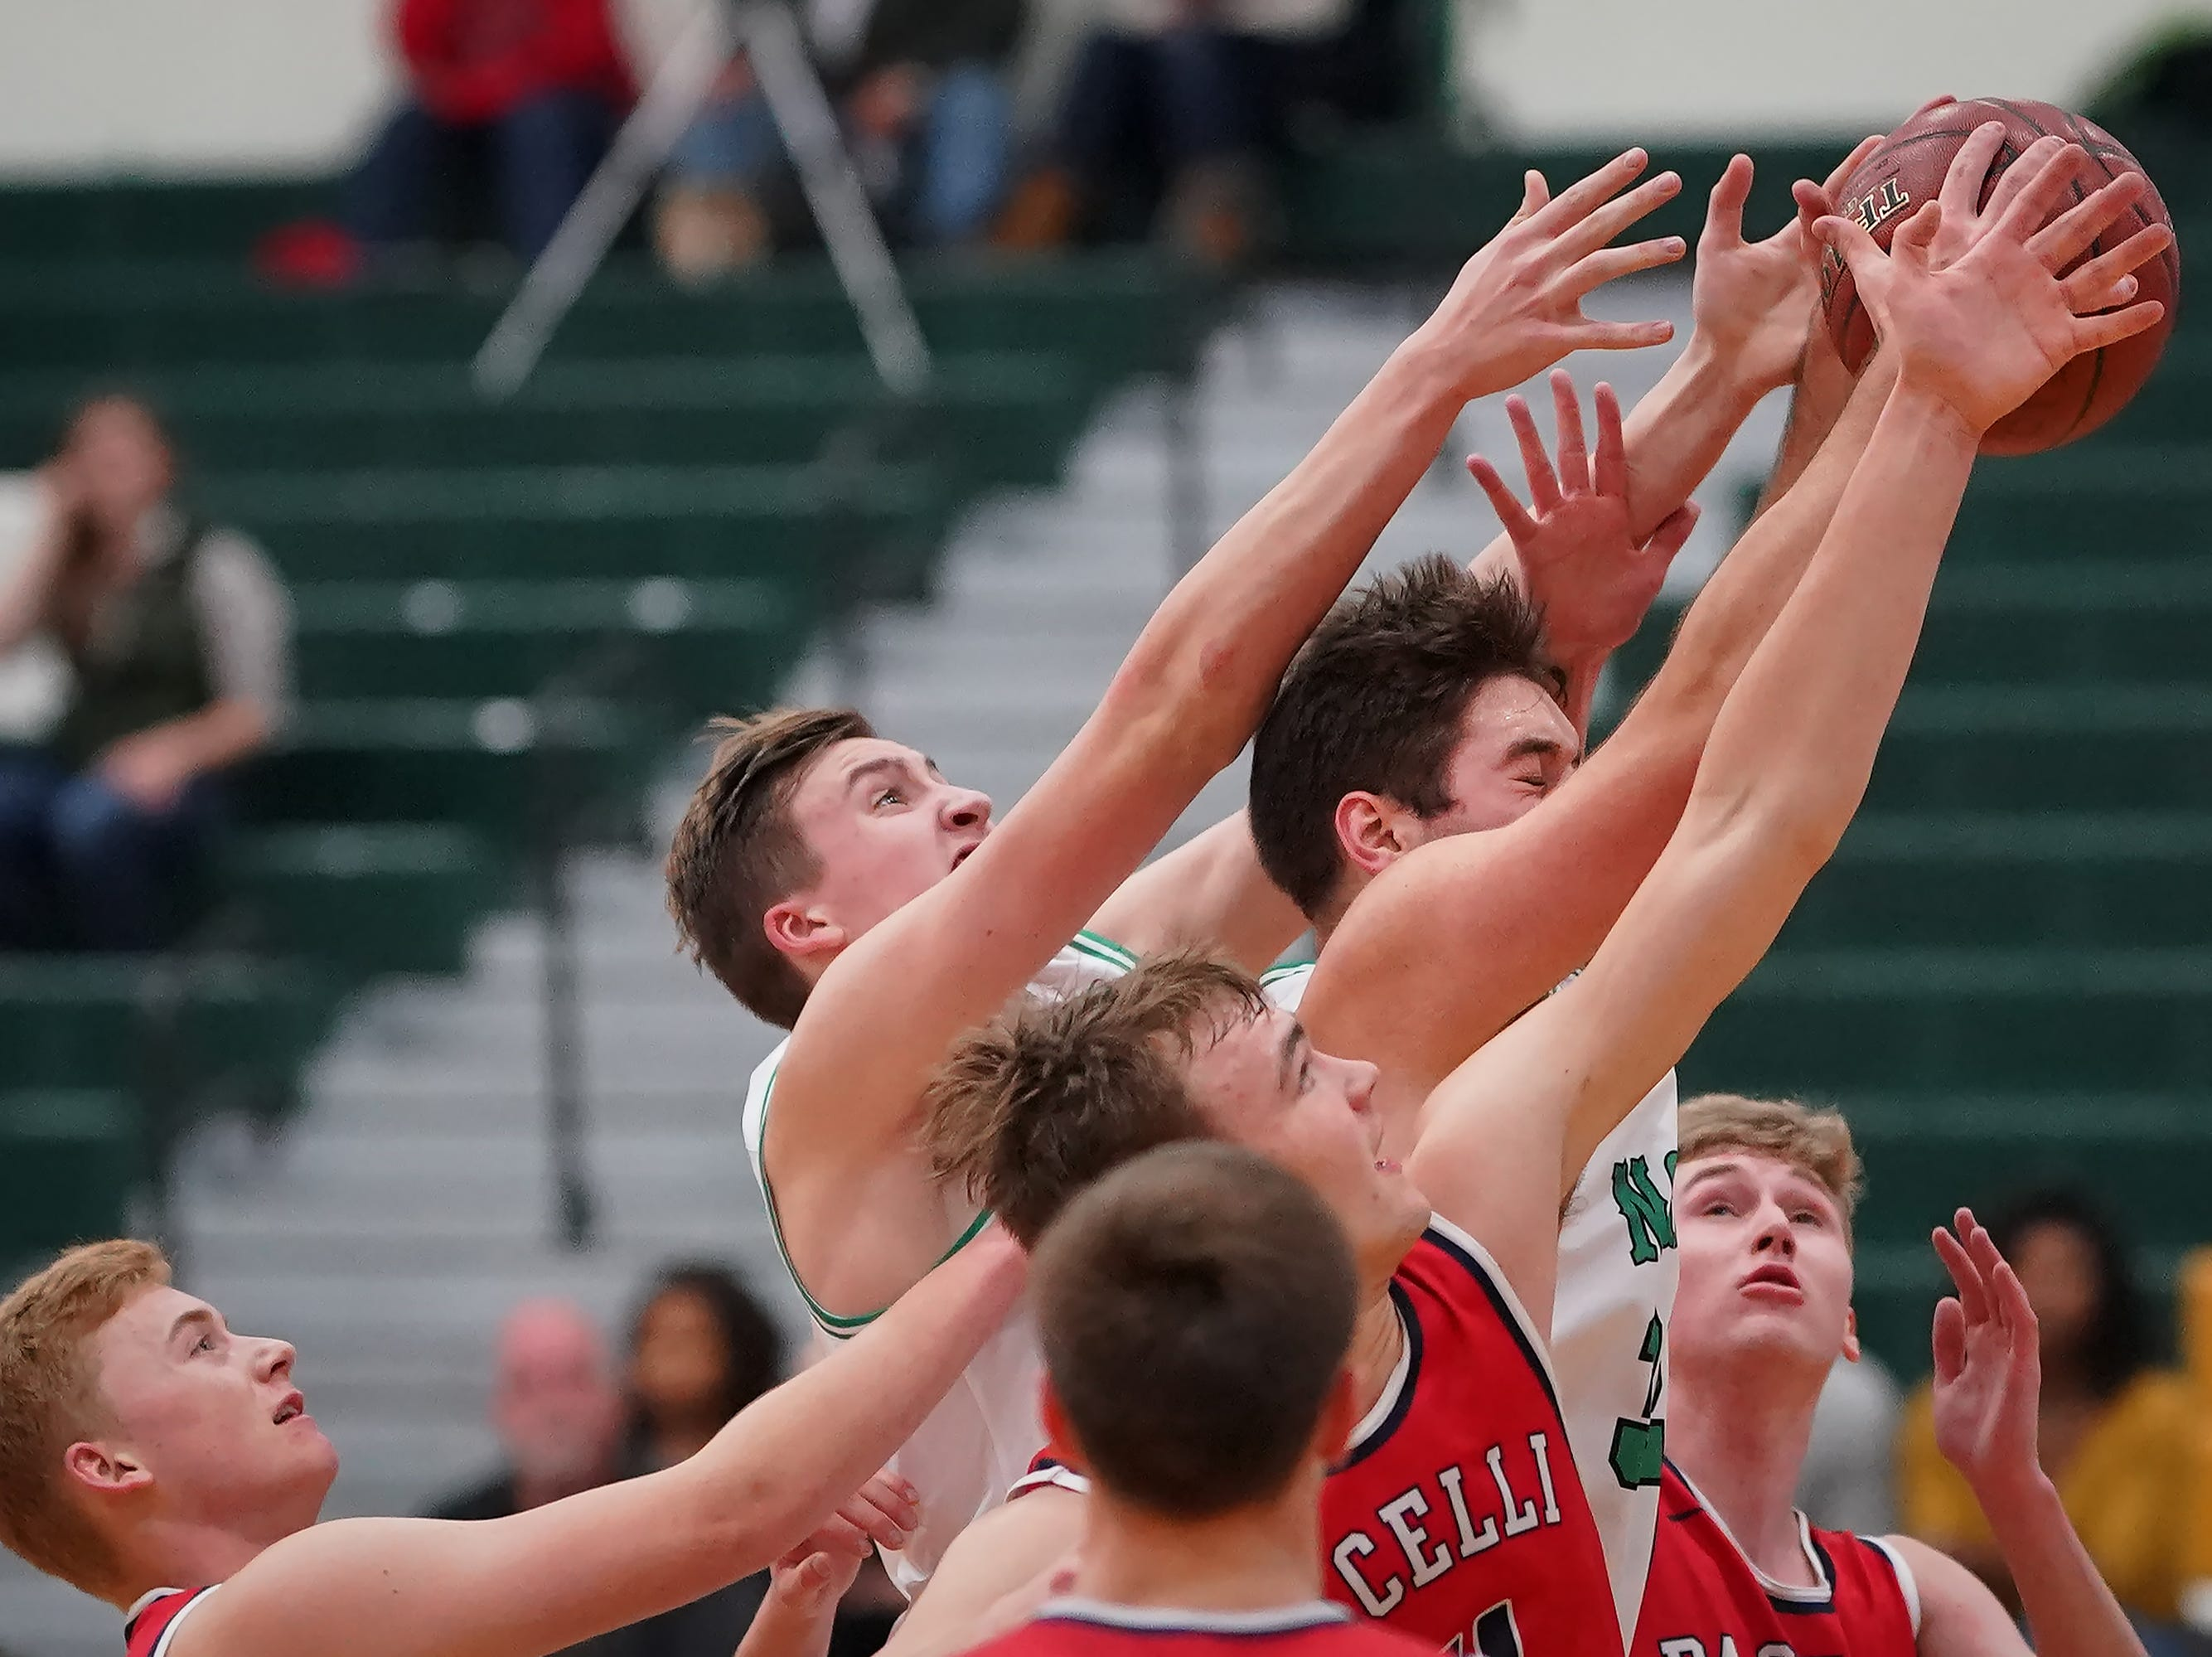 Matt Hickey (32) of Oshkosh North battles for a rebound. The Oshkosh North Spartans hosted the Stevens Point Pacelli Catholic Cardinals in the Friday night game of the Fox River Brewing Thanksgiving Classic Tournament.